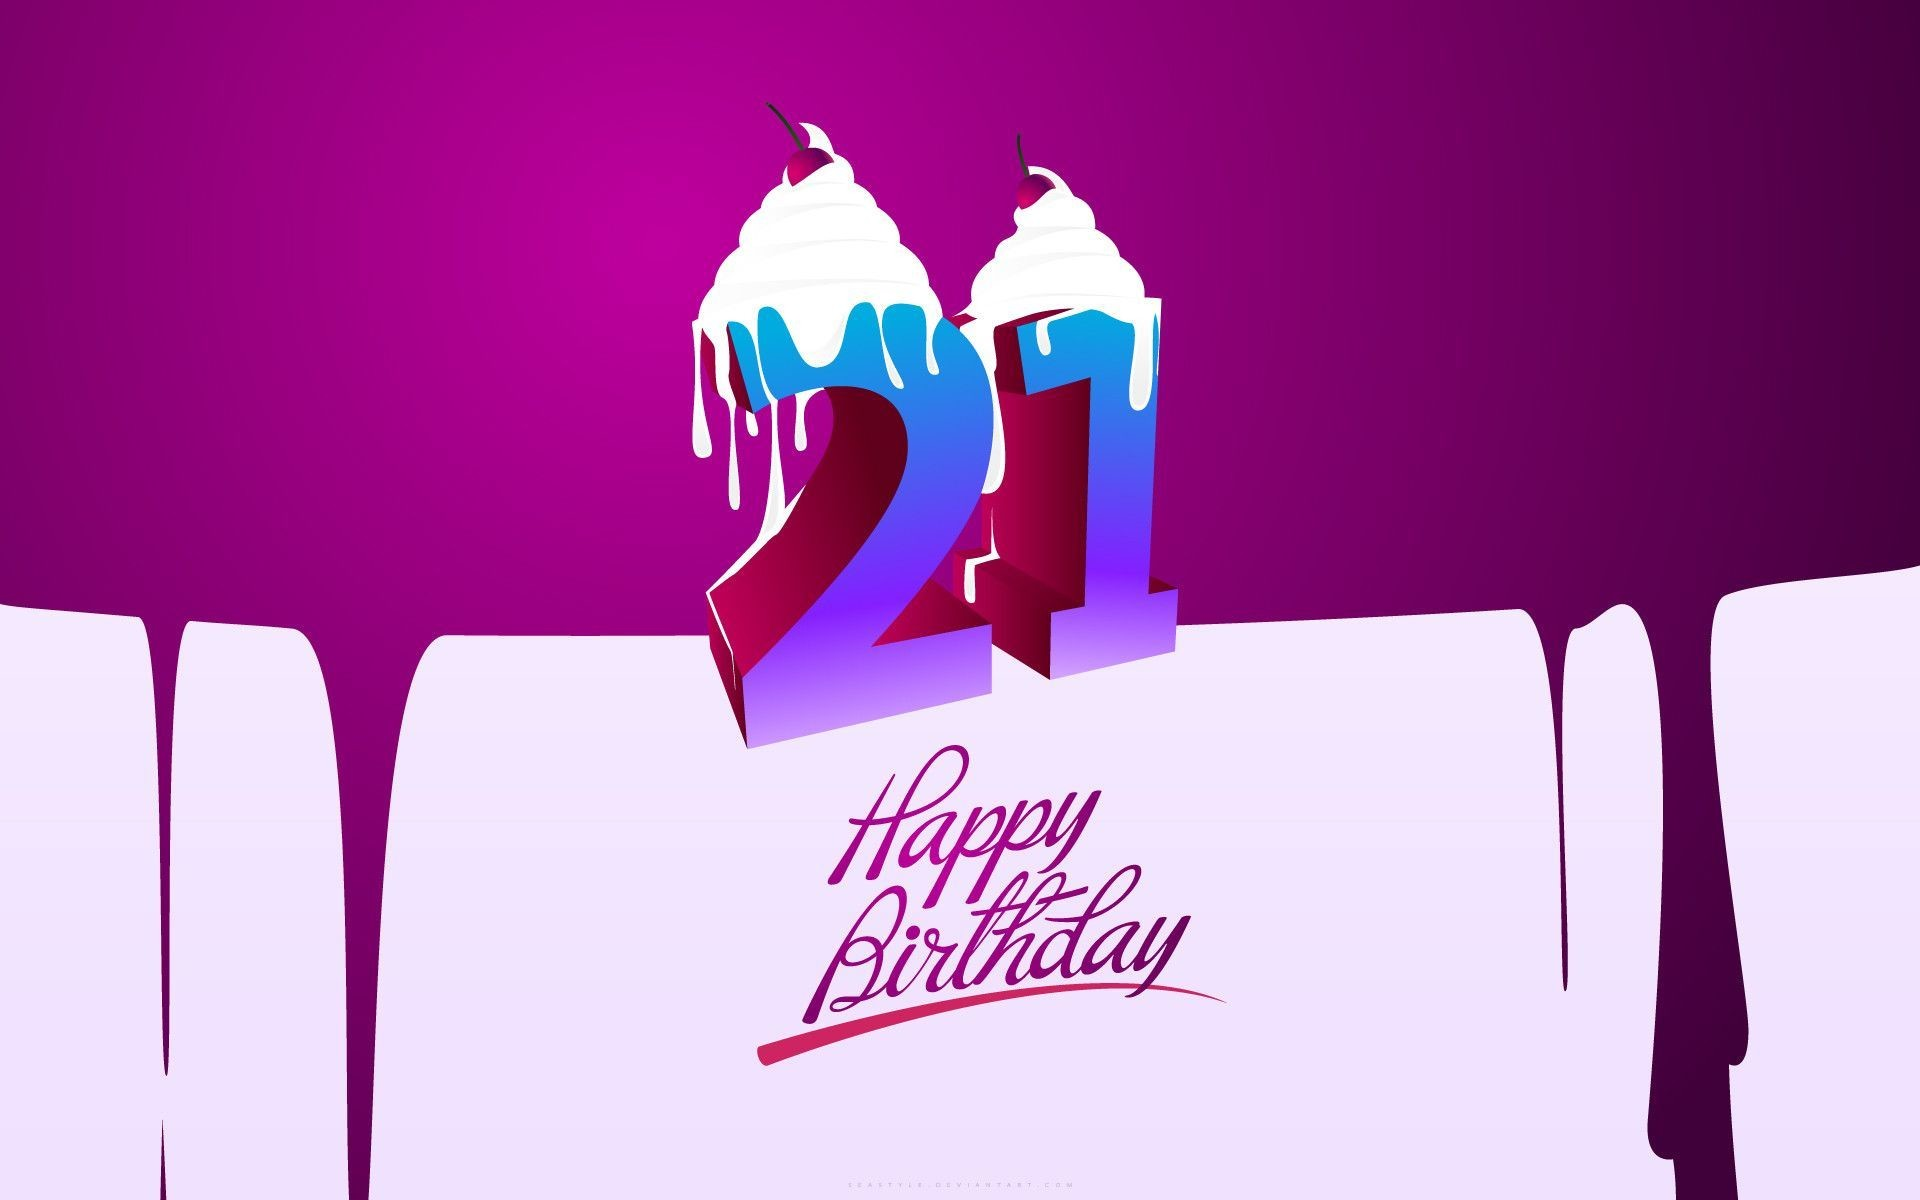 Happy Birthday Wallpapers With Name 183 ① Wallpapertag